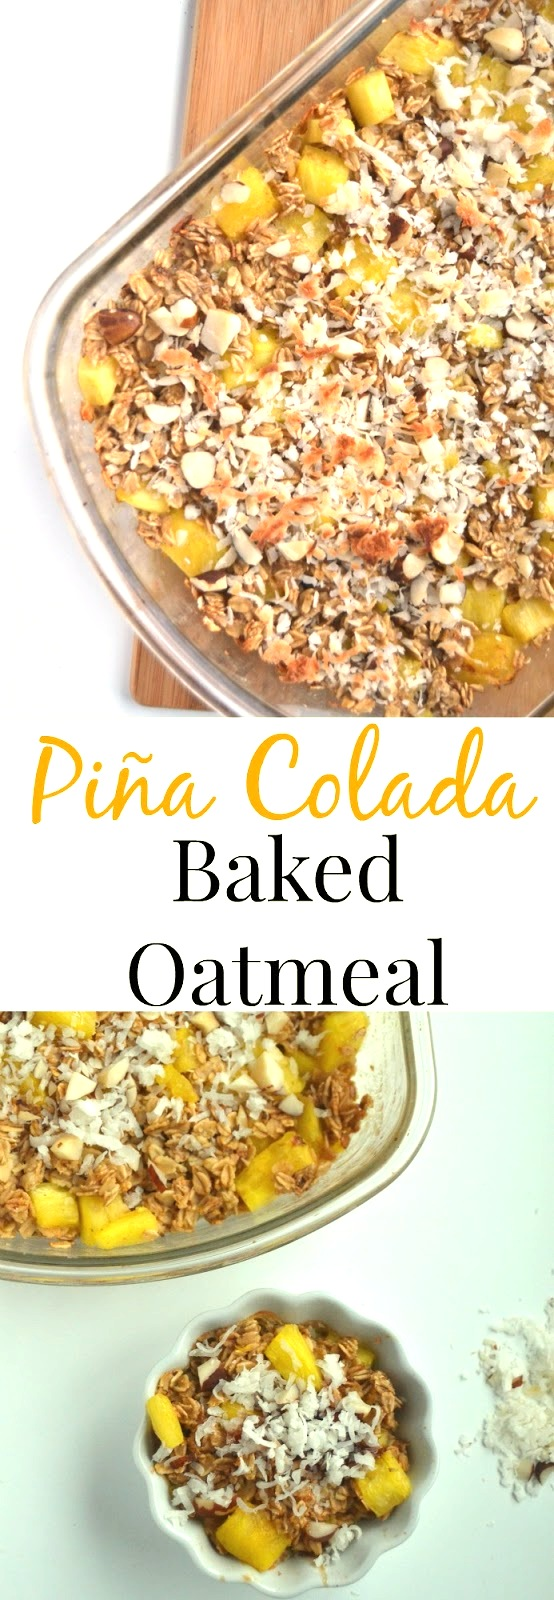 Piña Colada Baked Oatmeal- loaded with fresh pineapple, coconut, oats and Brazil nuts for a nutritious breakfast! www.nutritionistreviews.com